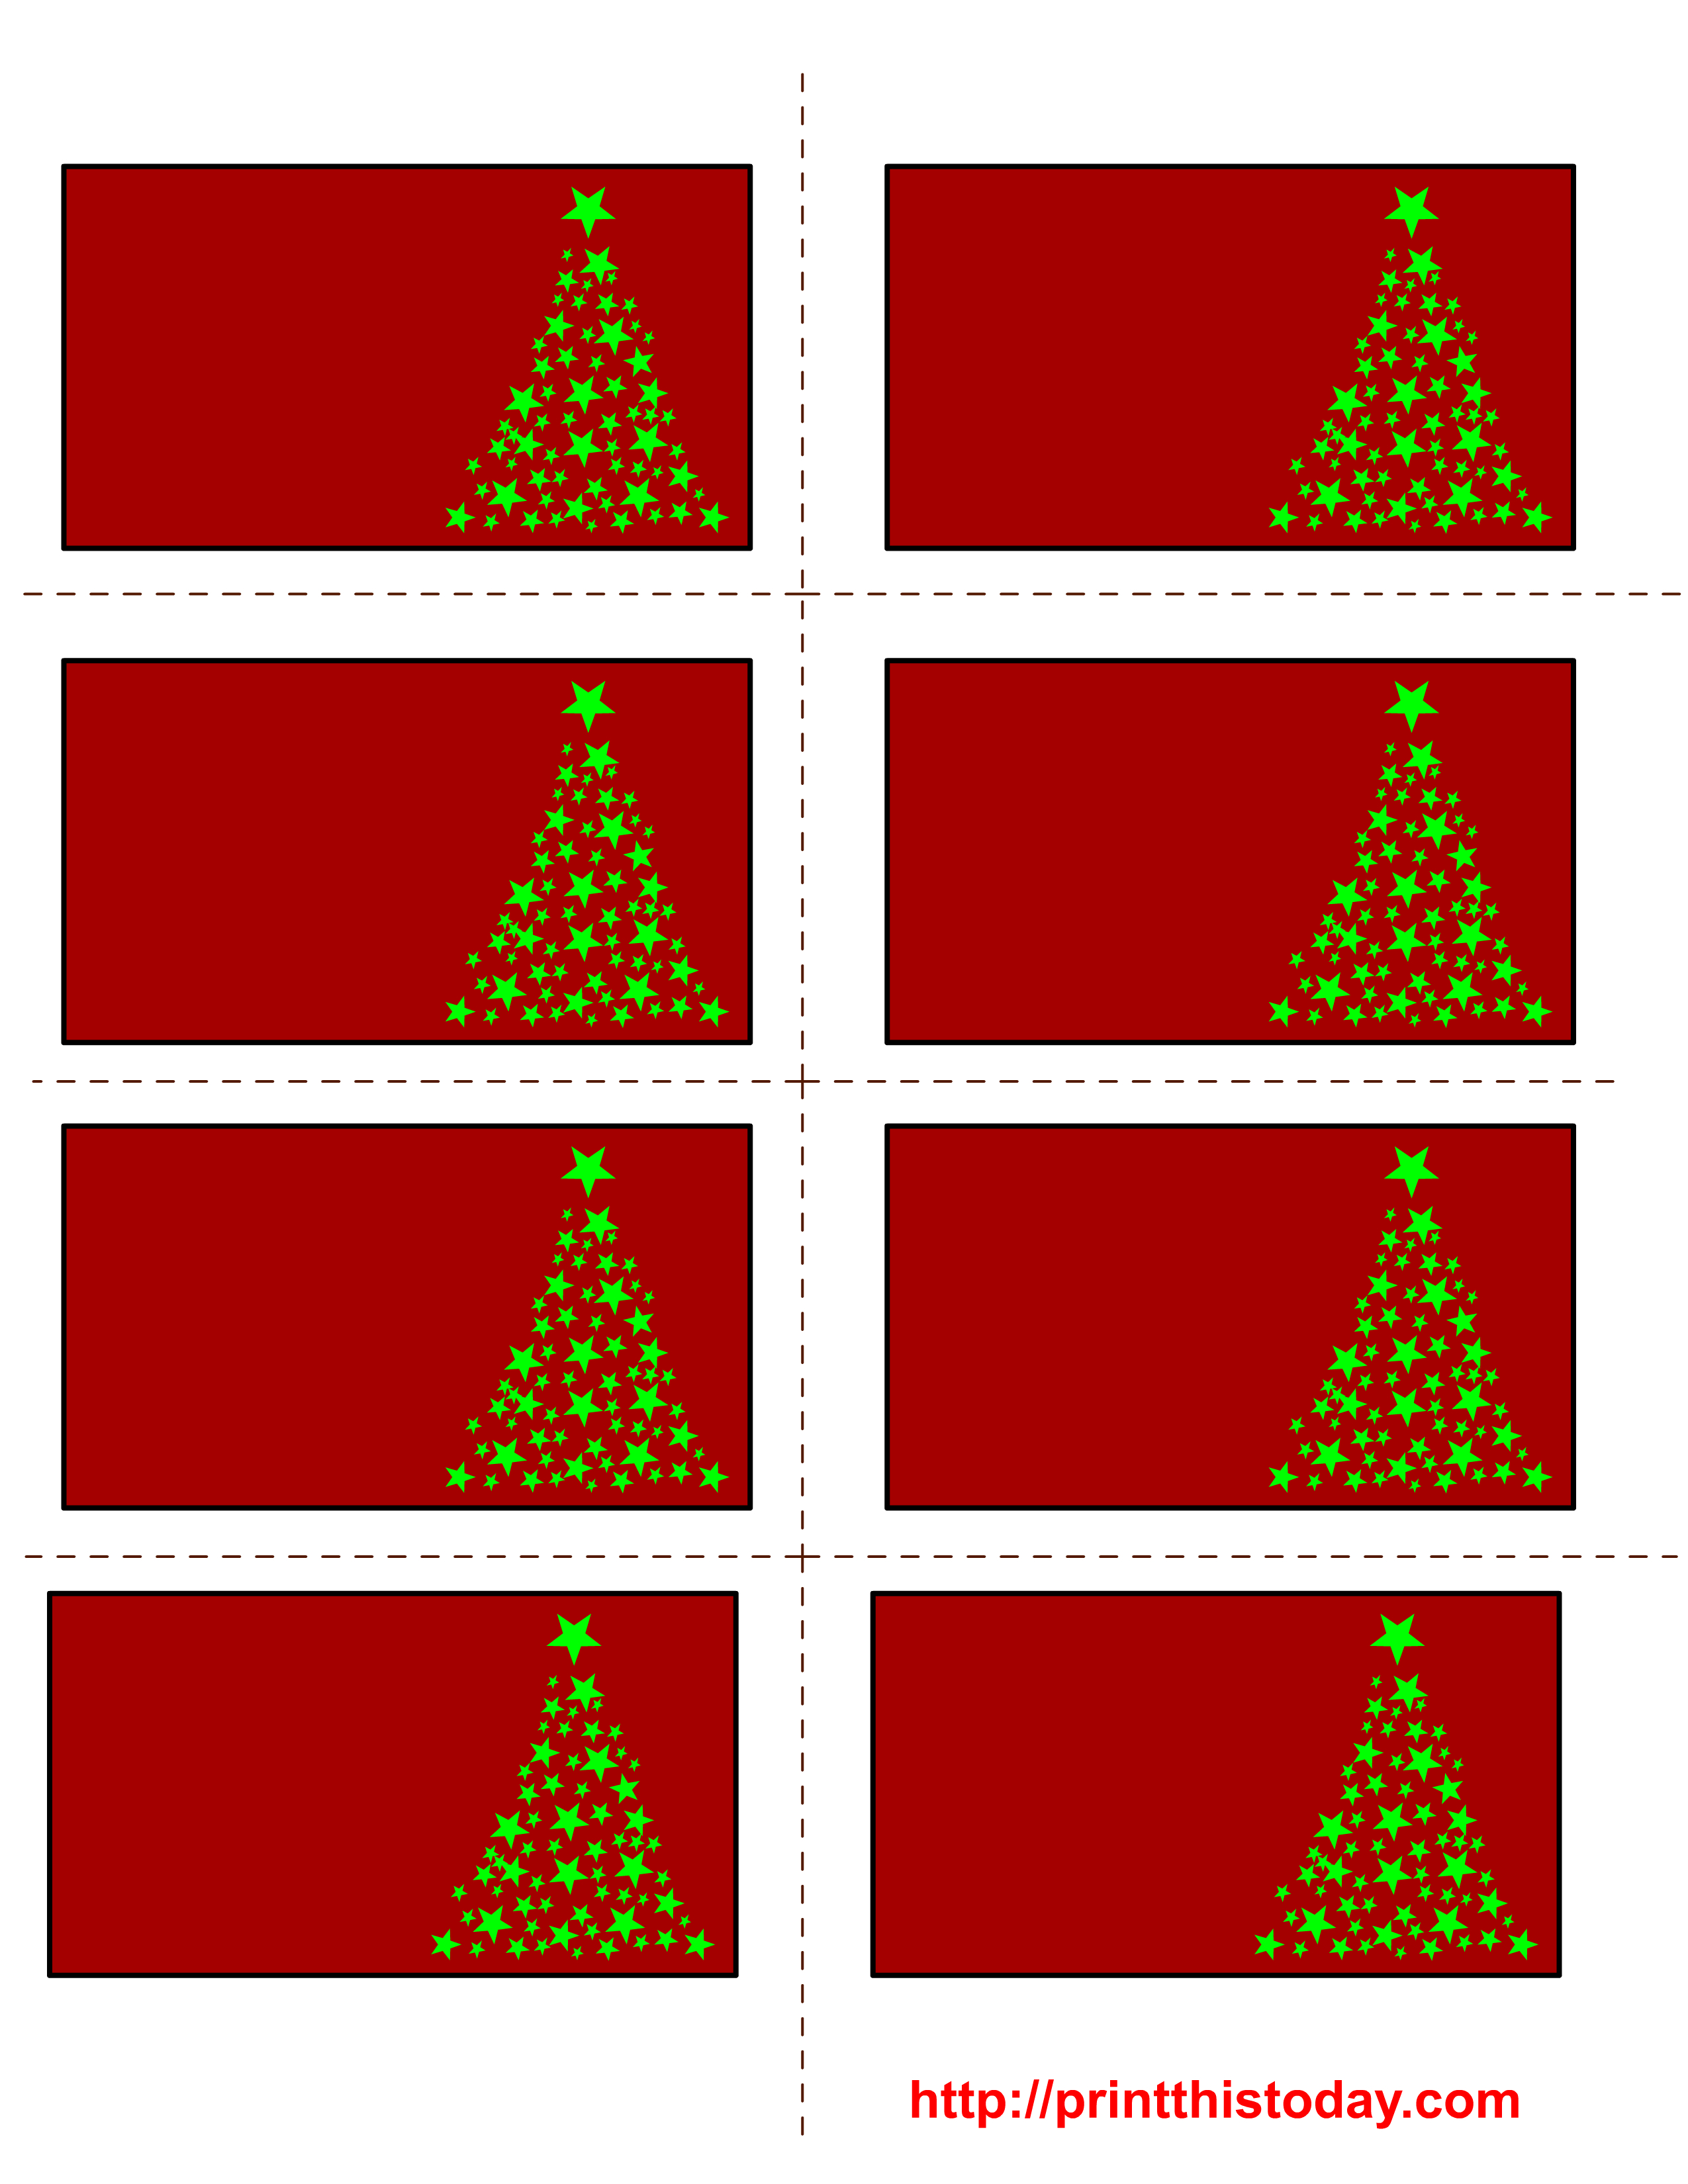 Free Printable Christmas Labels With Trees - Christmas Labels Free Printable Templates